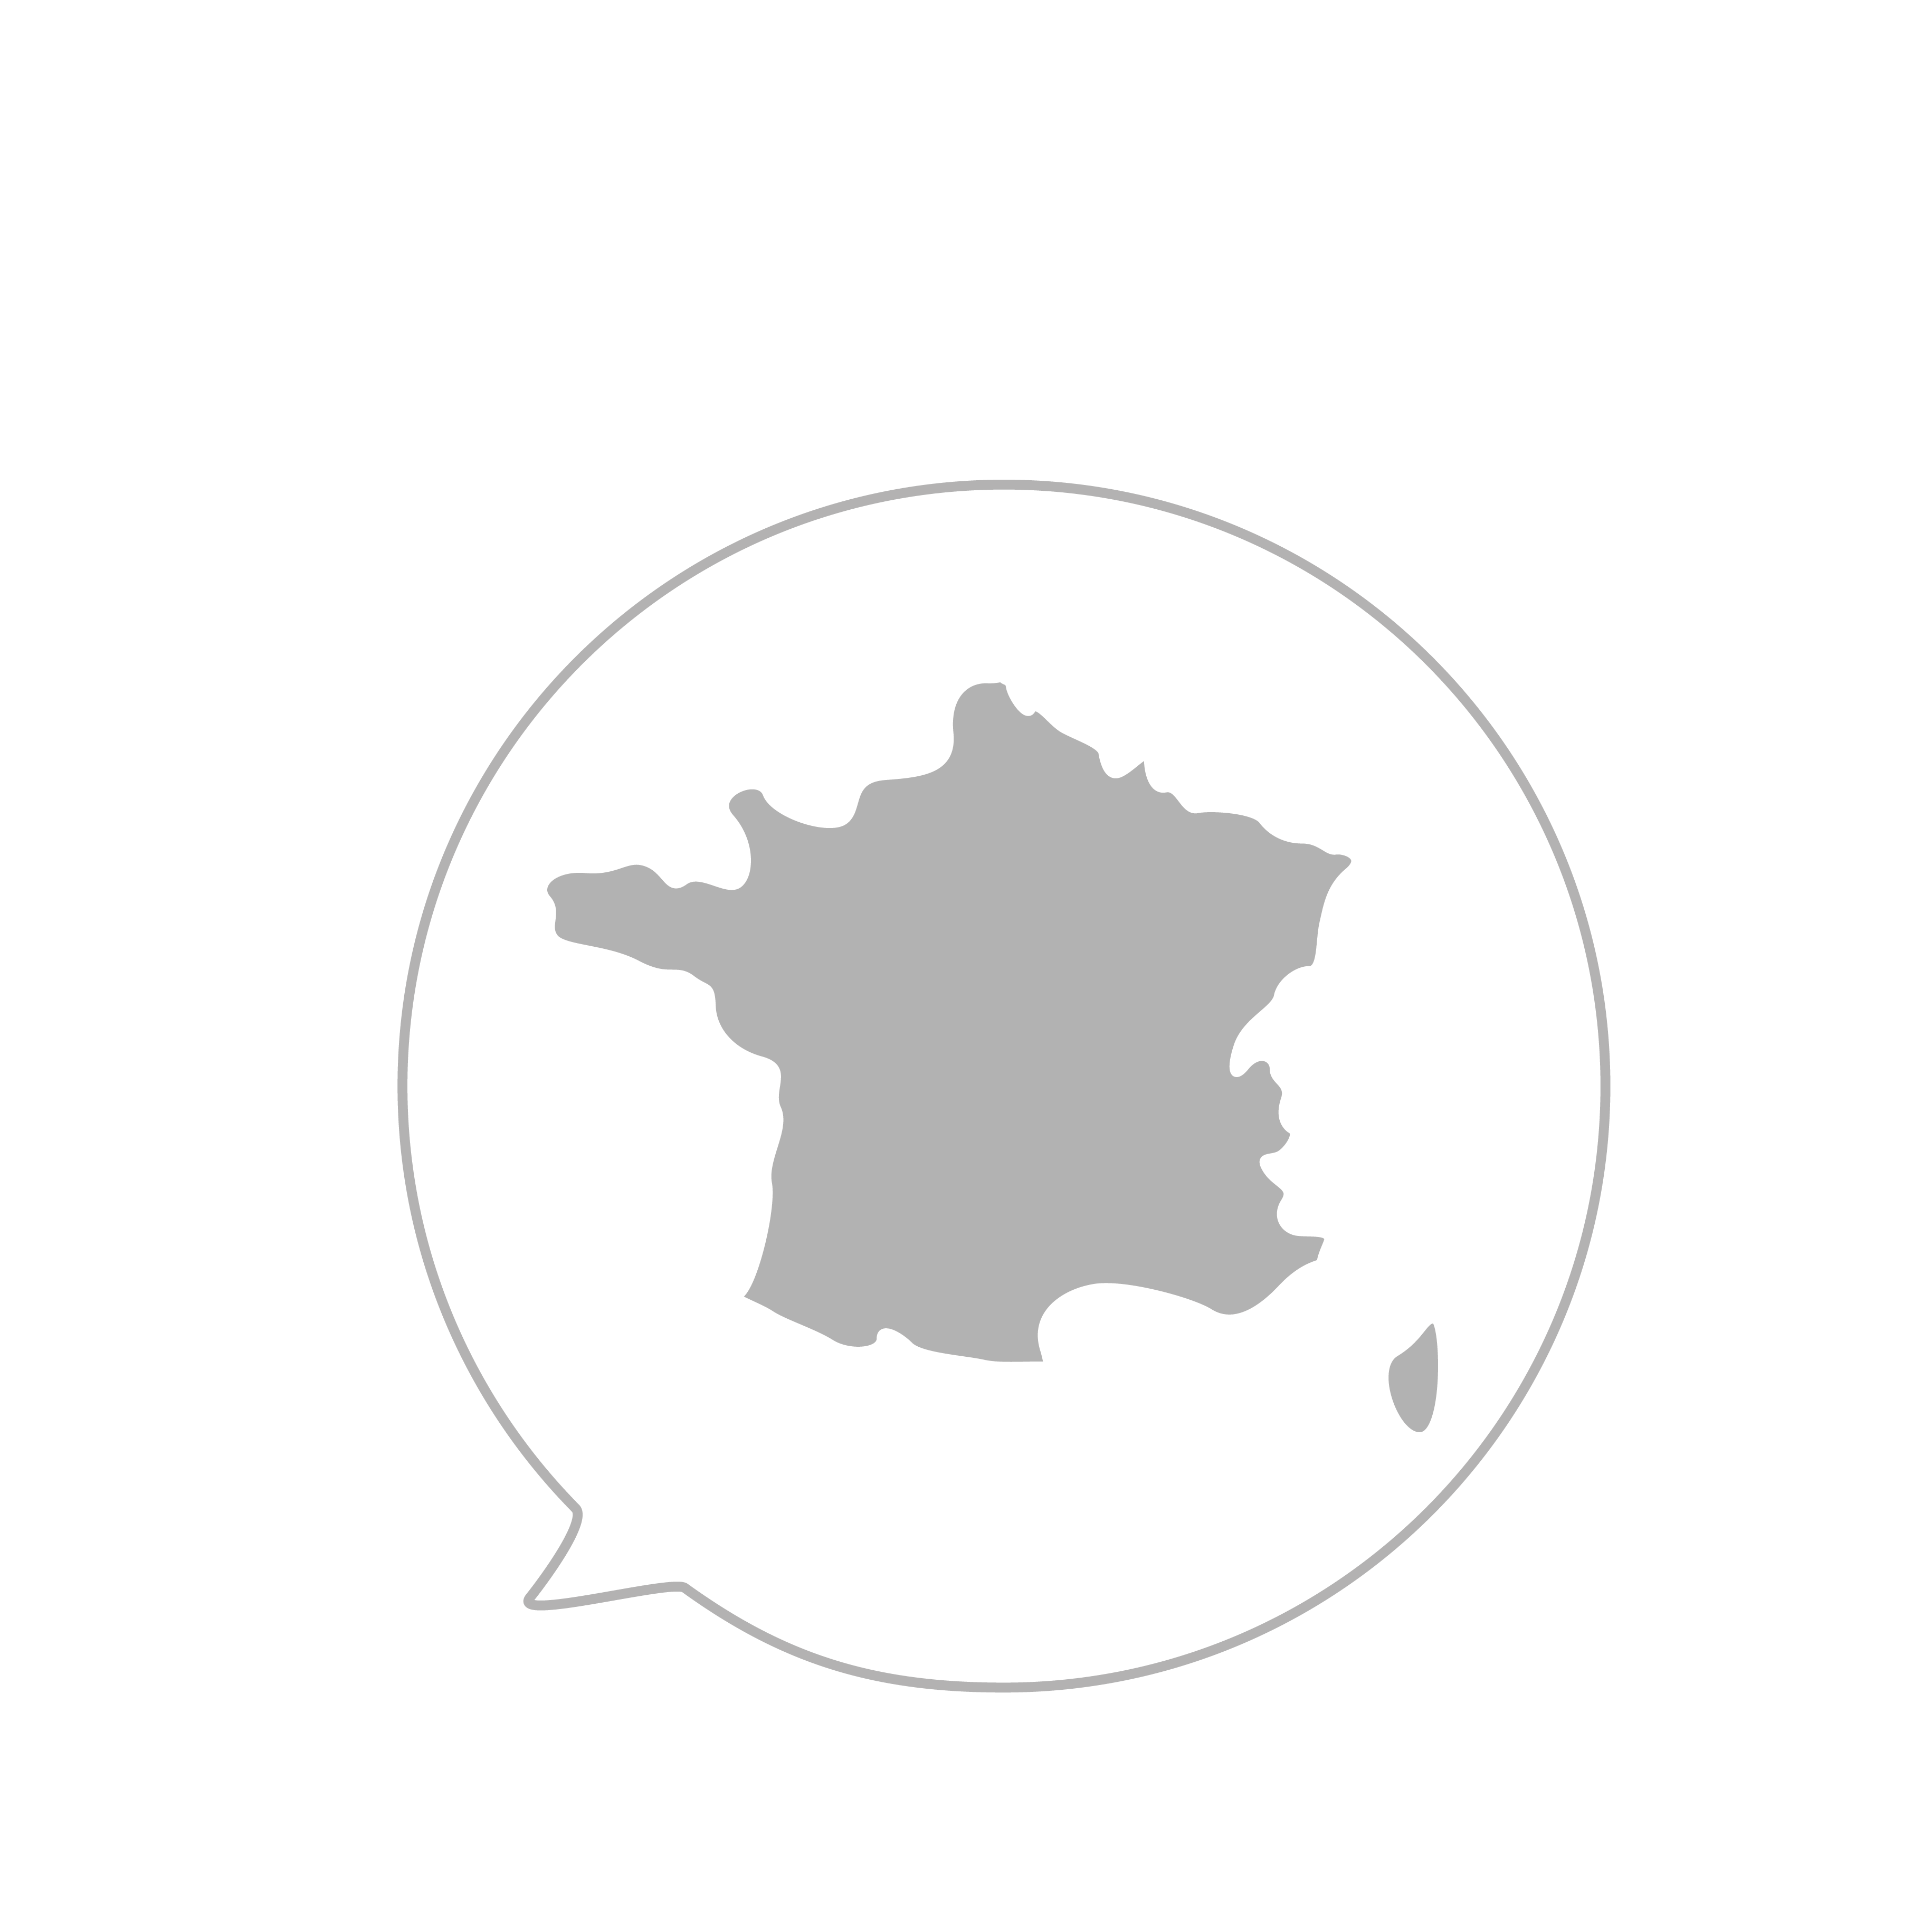 France Contact Details